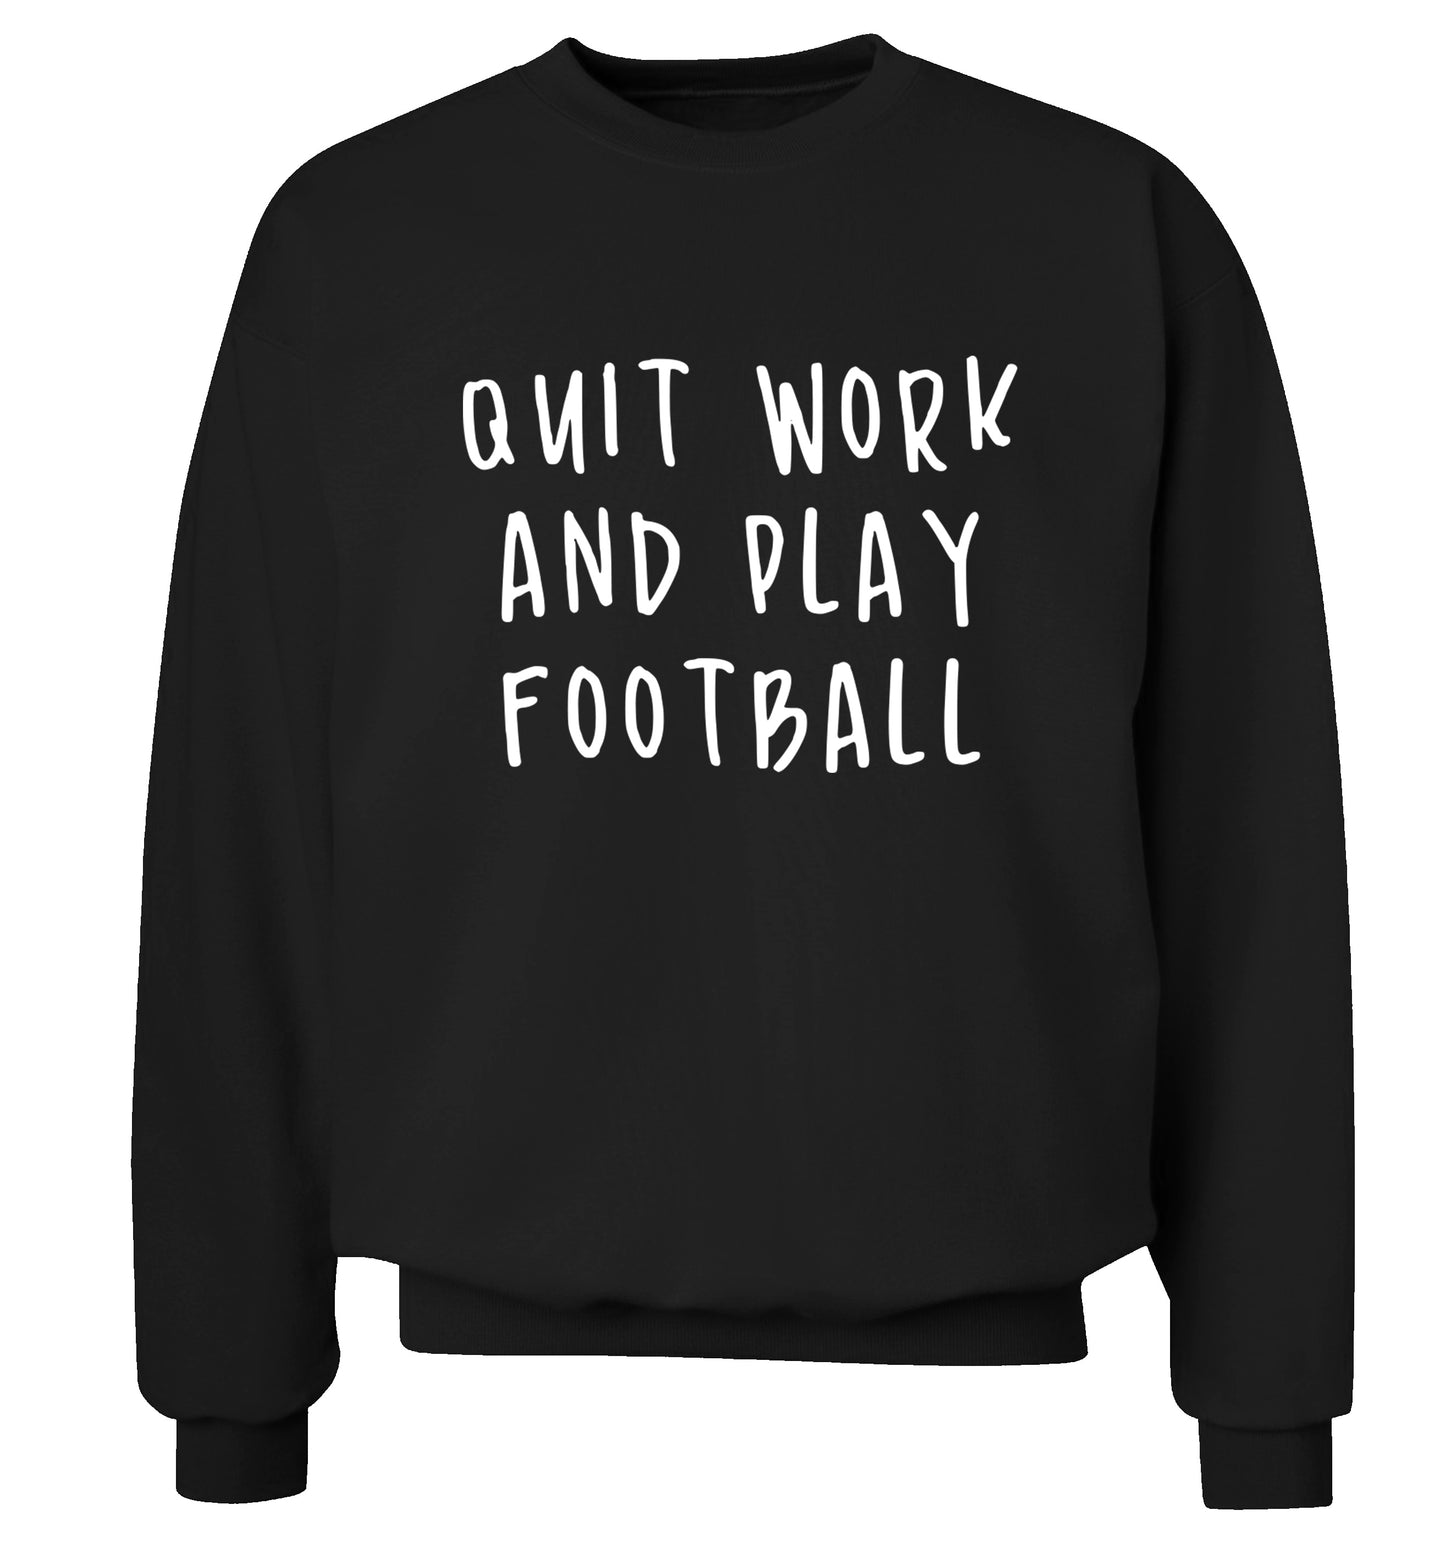 Quit work play football Adult's unisexblack Sweater 2XL